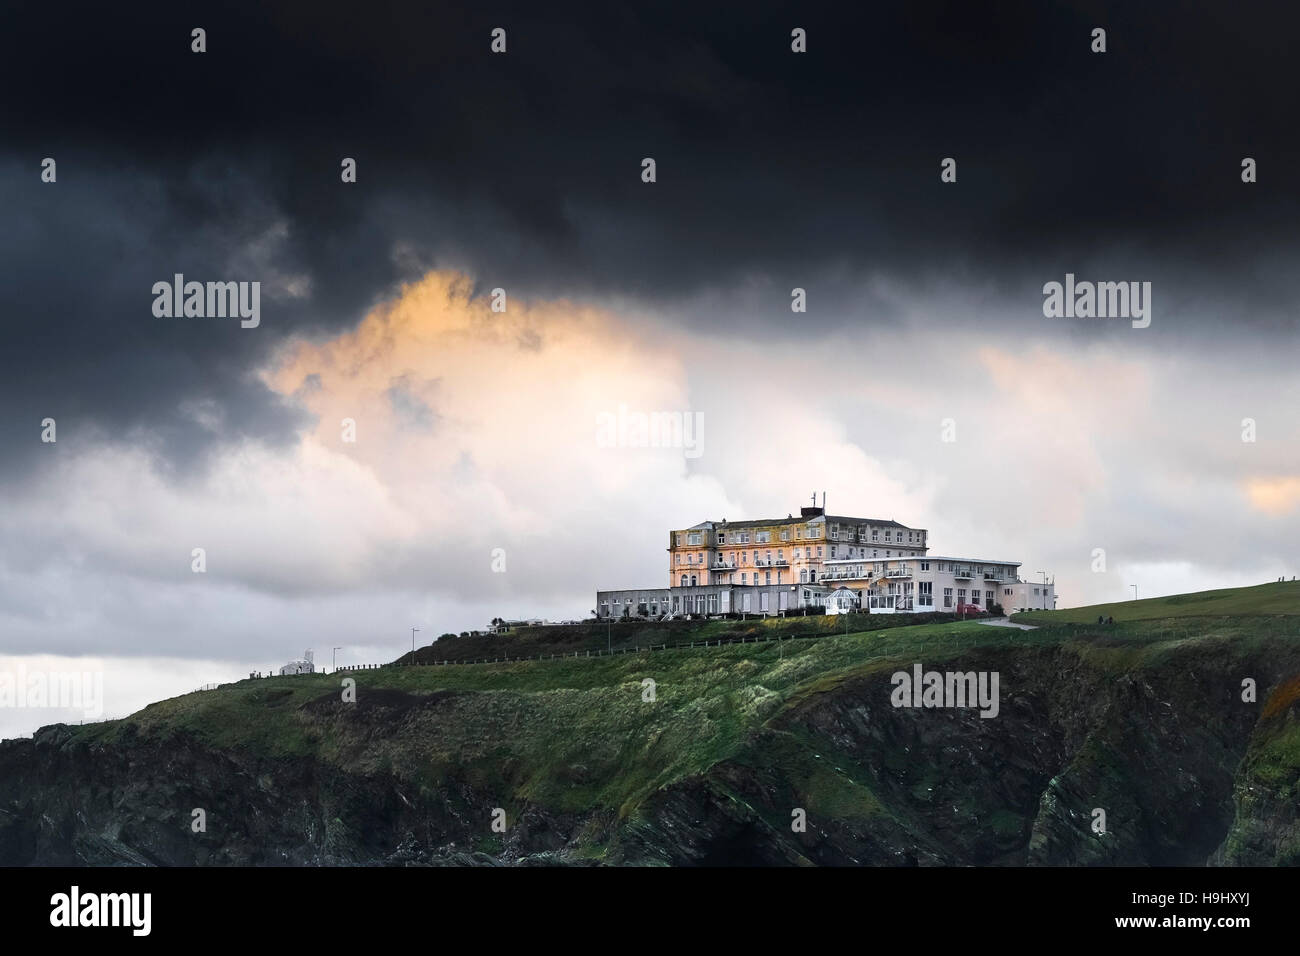 Dark clouds from Storm Angus gathering over The Atlantic Hotel in Newquay, Cornwall. UK weather. - Stock Image